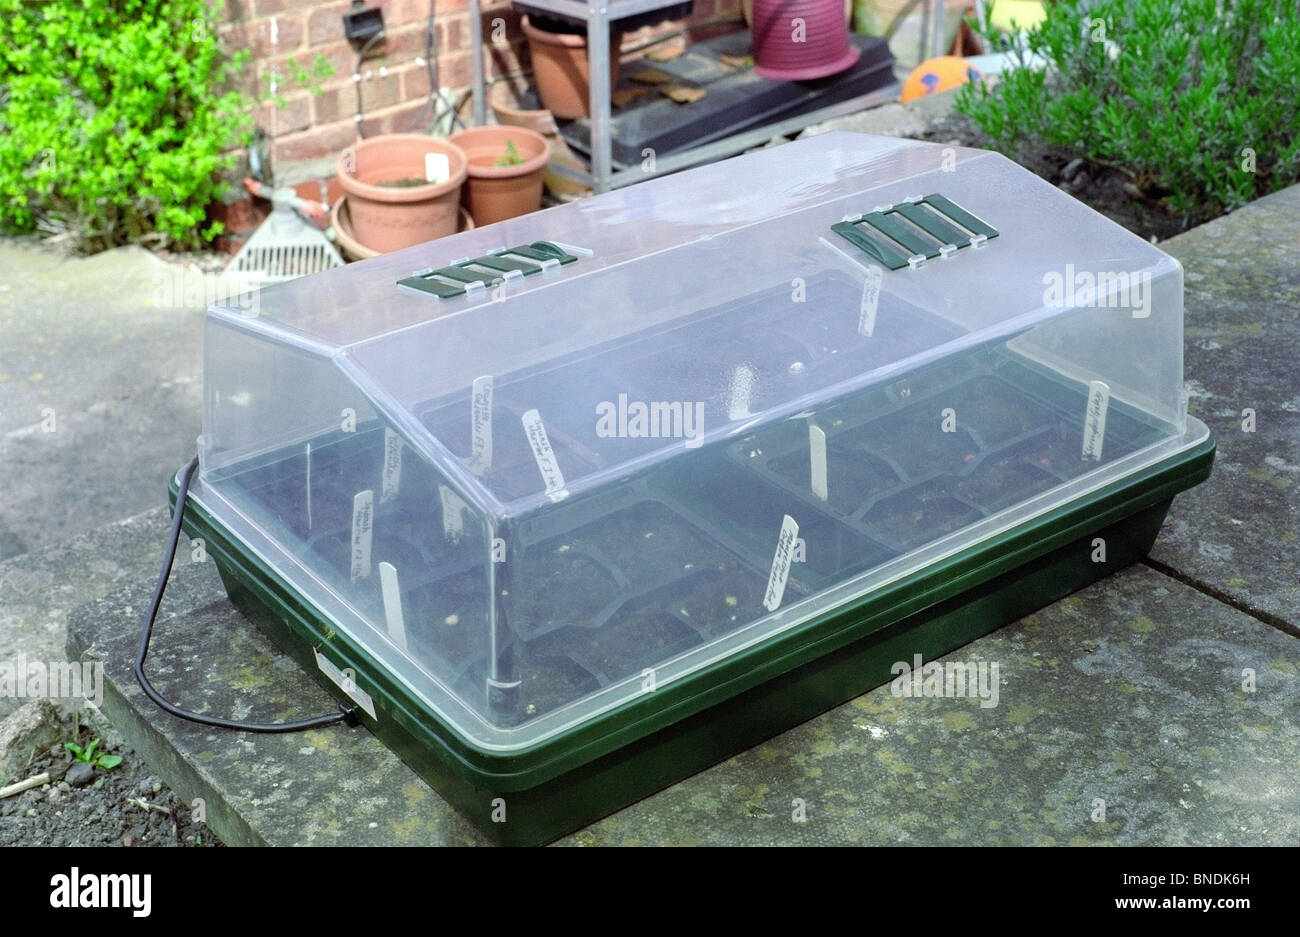 electric plant propagator with seed trays inside